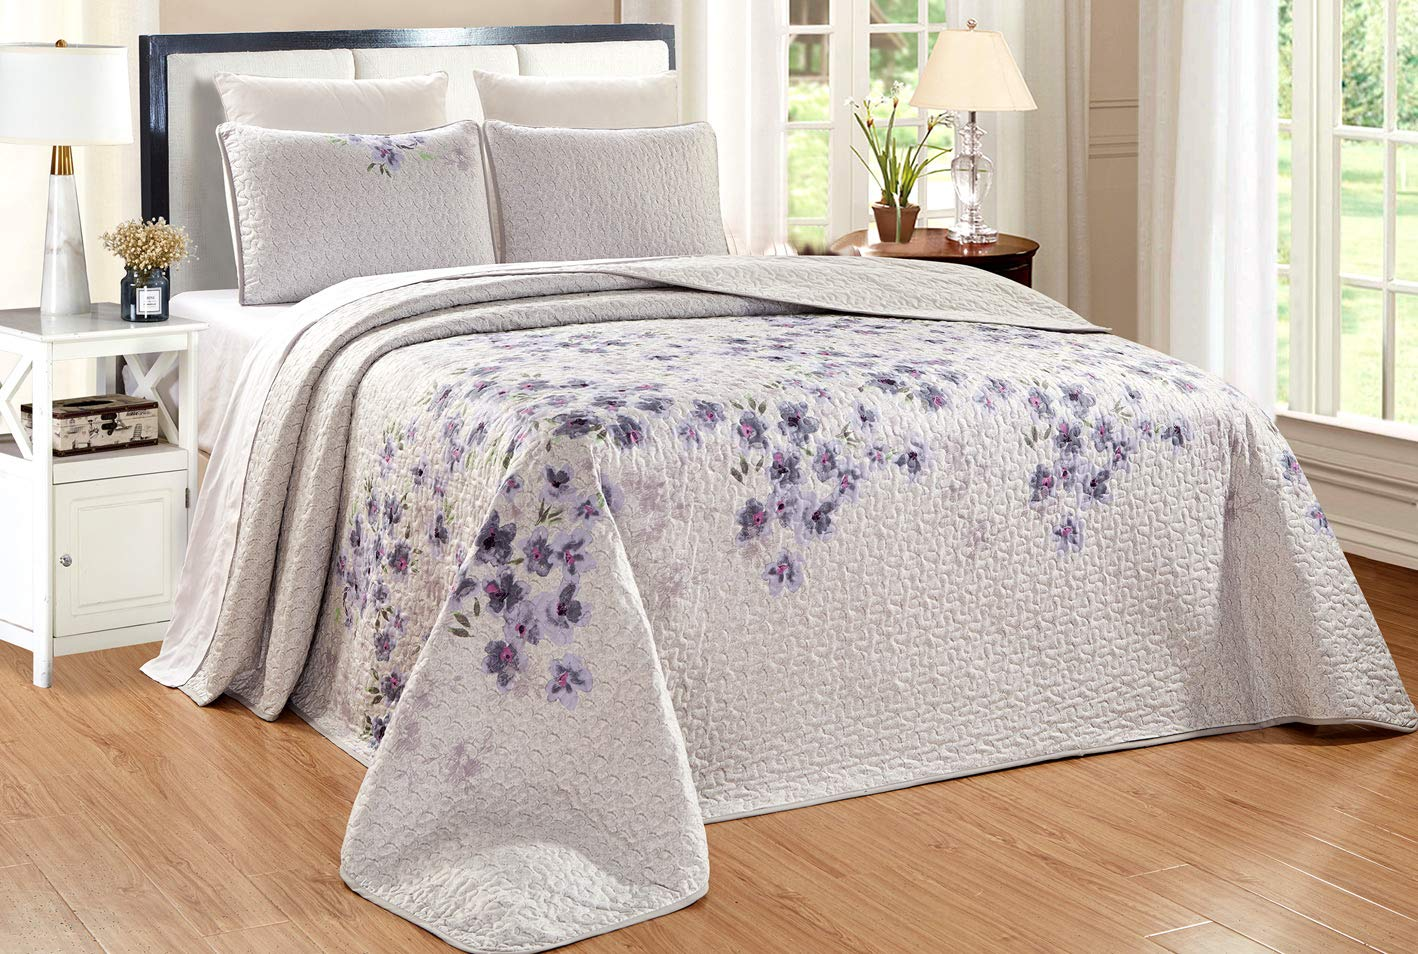 "3-Piece Fine Printed Oversize (115"" X 95"") Quilt Set Reversible Bedspread Coverlet King Size Bed Cover (Purple, Grey, Sage Green, Floral)"